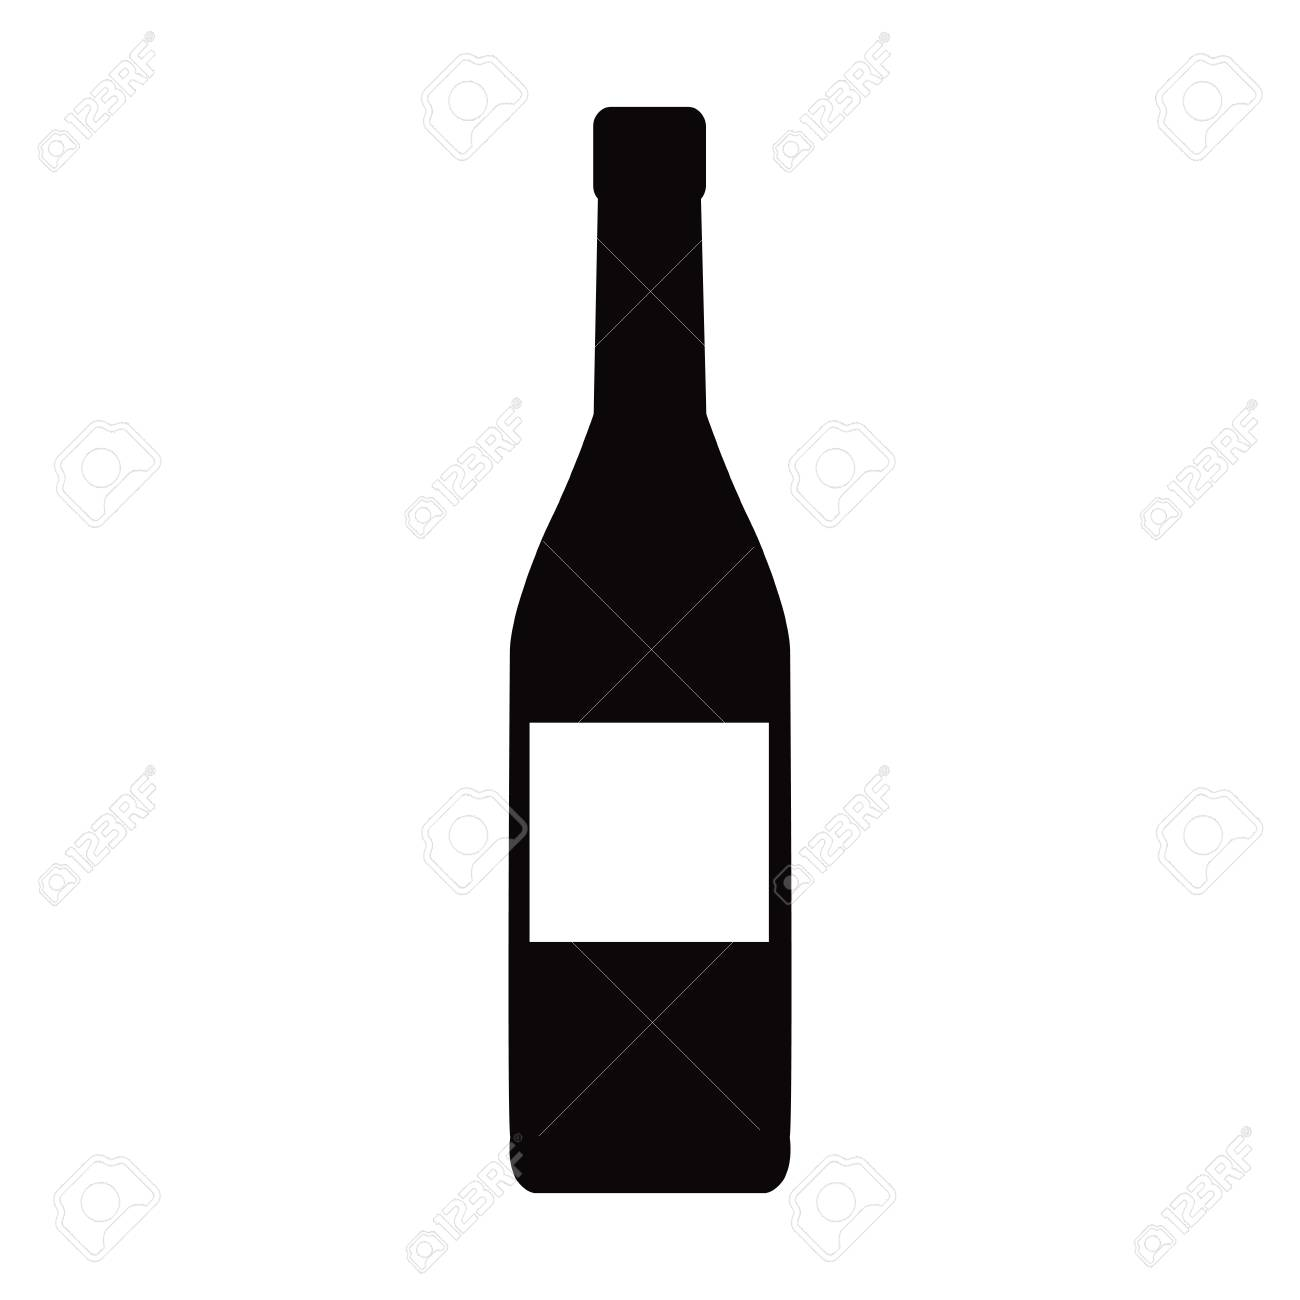 Black and white alcohol clipart clip art royalty free stock Alcohol Clipart black and white 22 - 1300 X 1300 Free Clip Art stock ... clip art royalty free stock